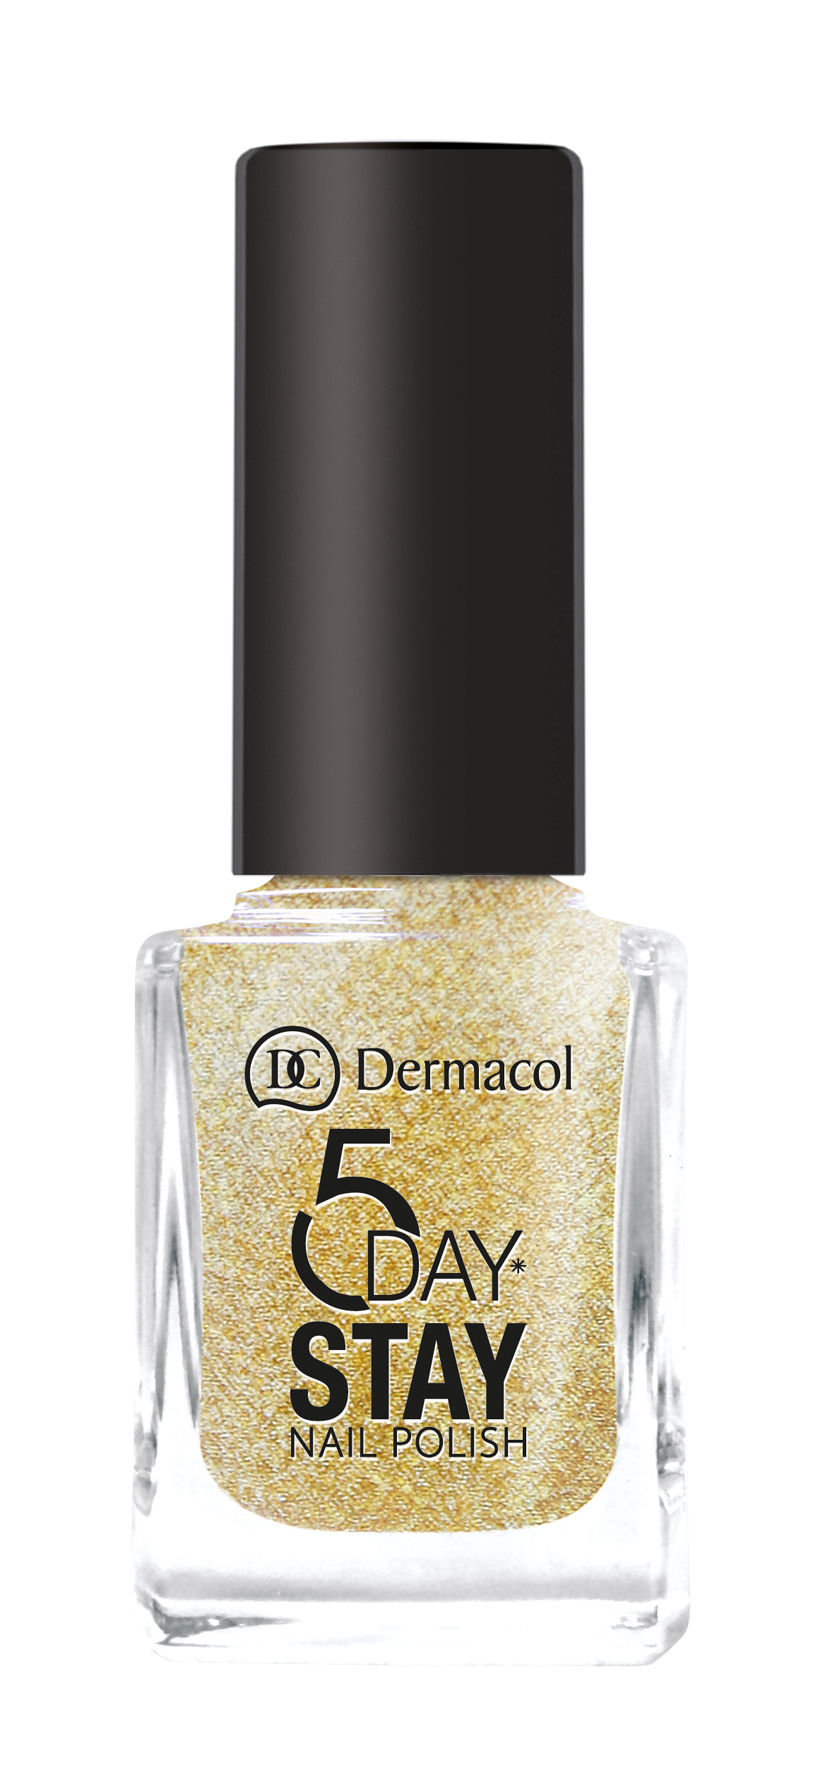 Dermacol 5 Day Stay Cosmetic 11ml 14 Gold Tiara